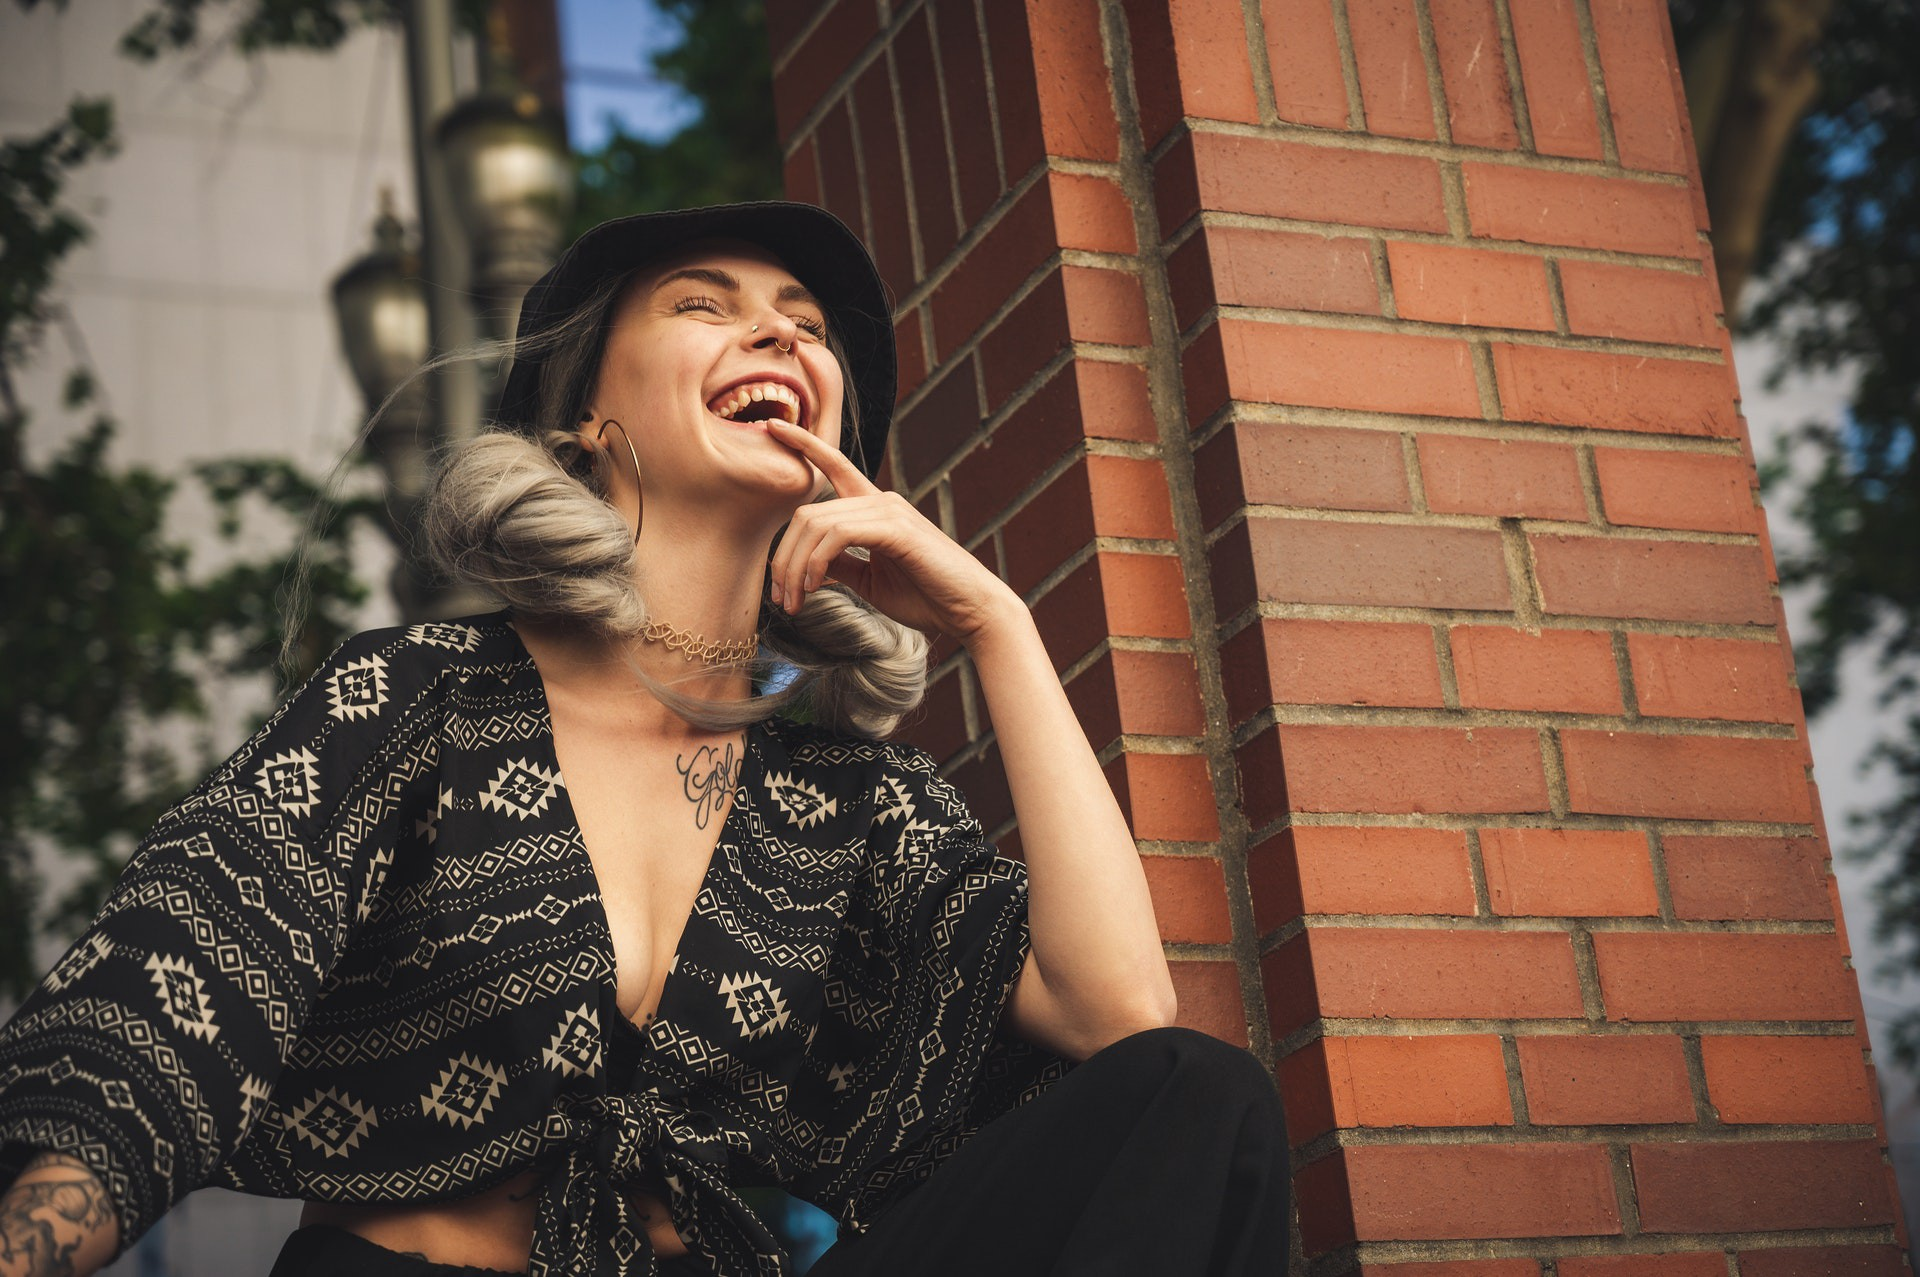 Low angle photo shot of woman smiling wearing crop top